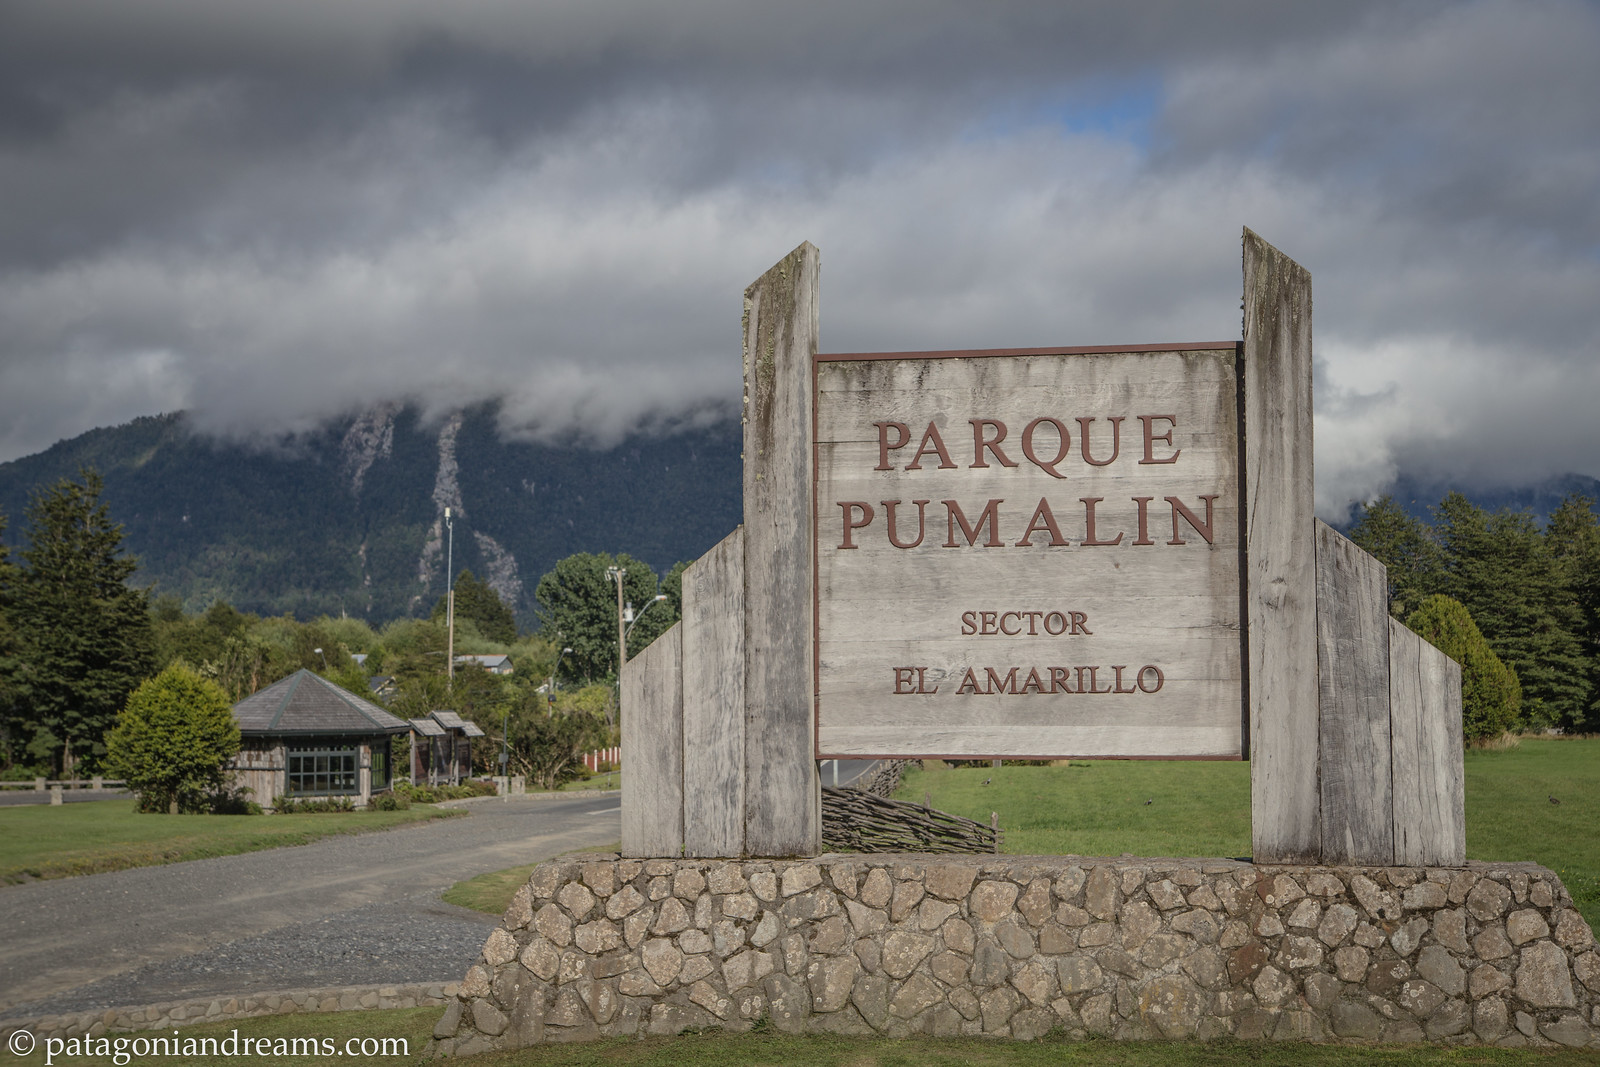 Parque Pumalín was Chile's largest private nature reserve and operated as a public-access park, with an extensive infrastructure of trails, campgrounds, and visitor centers. By an accord announced on 18 March 2017, the park was gifted to the Chilean state and consolidated with another 4,000,000 ha (9,884,215 acres) to become part of South America's largest national park, X Región de Los Lagos, Patagonia, Chile.